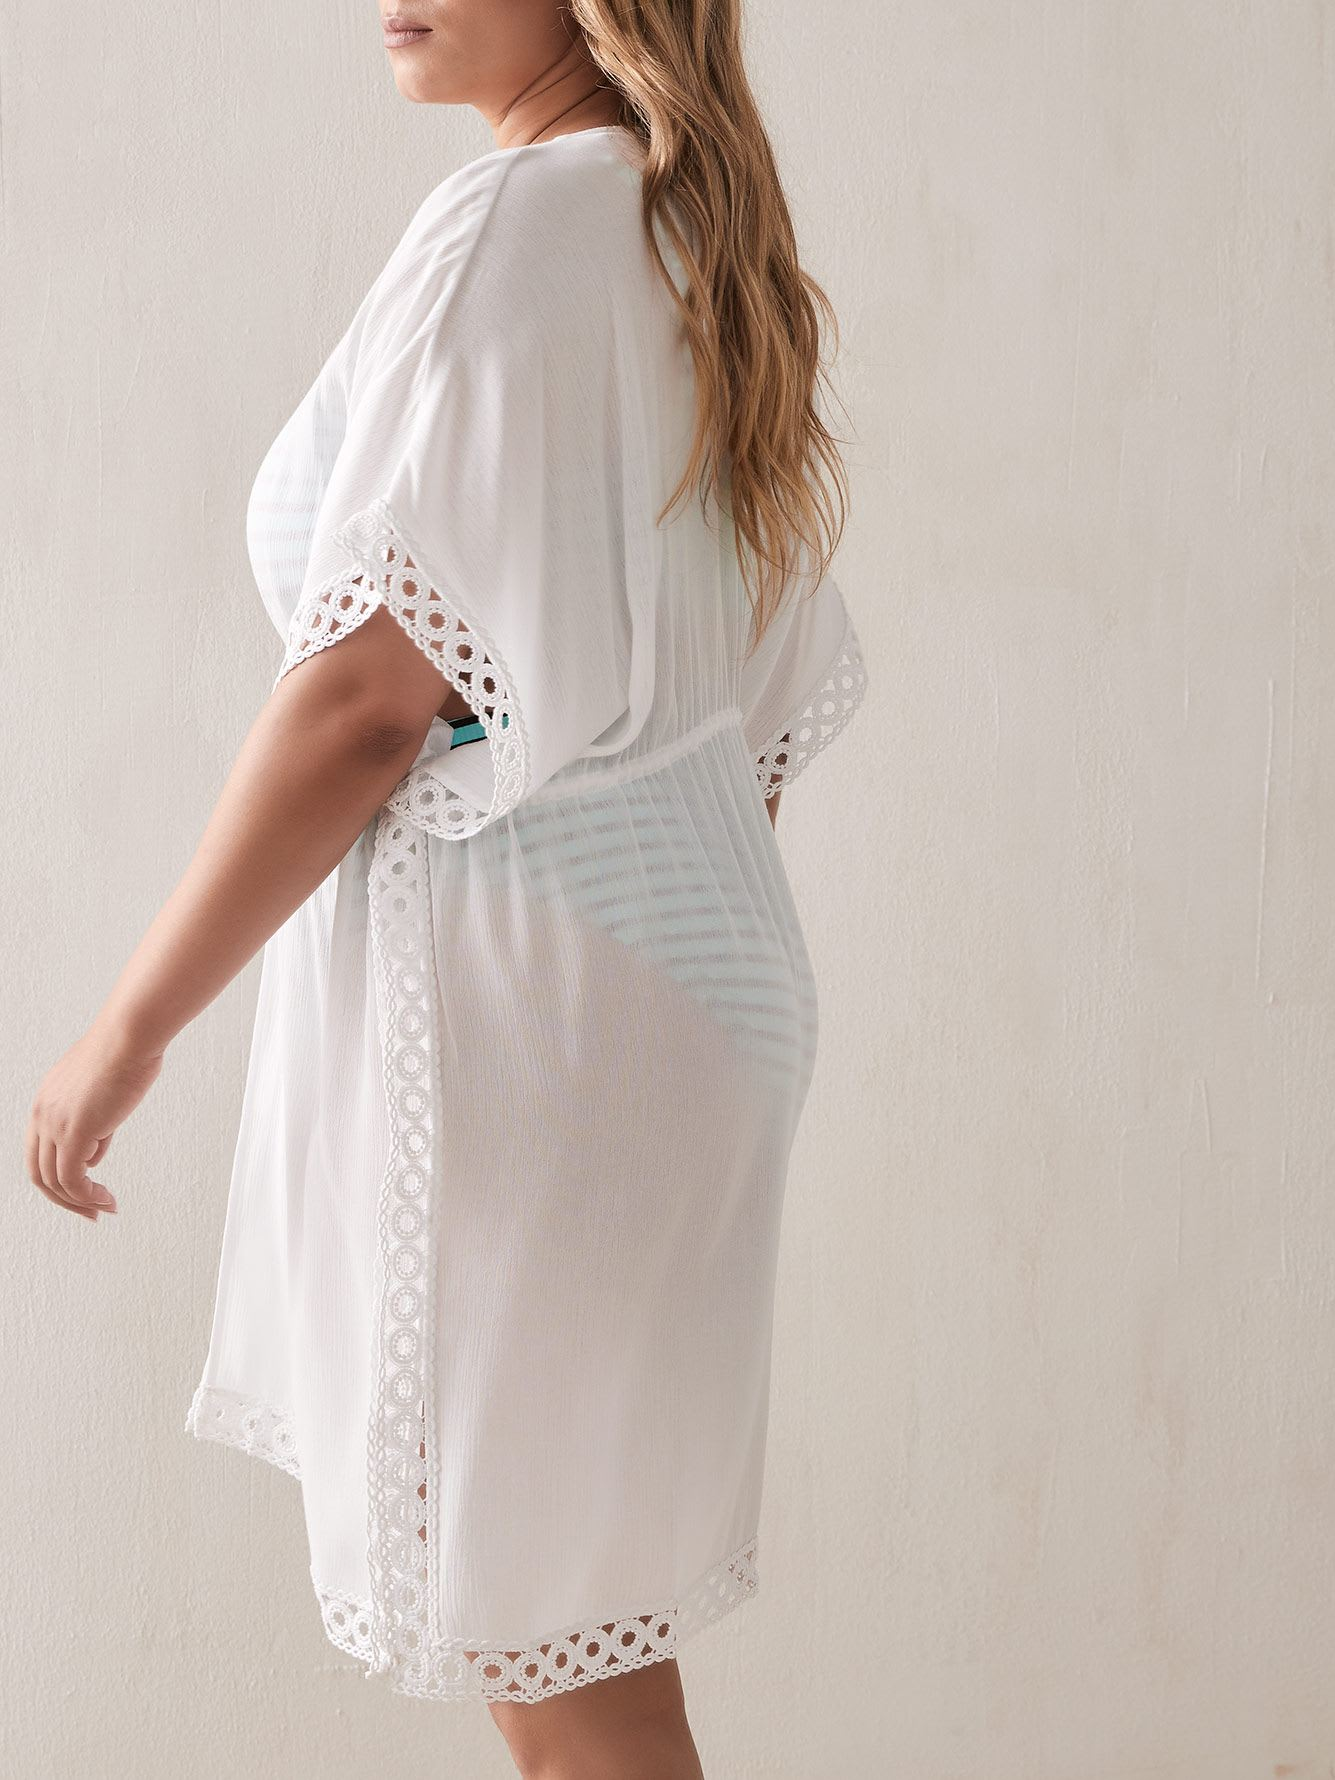 Solid Cover-Up with Crochet Trim - Addition Elle